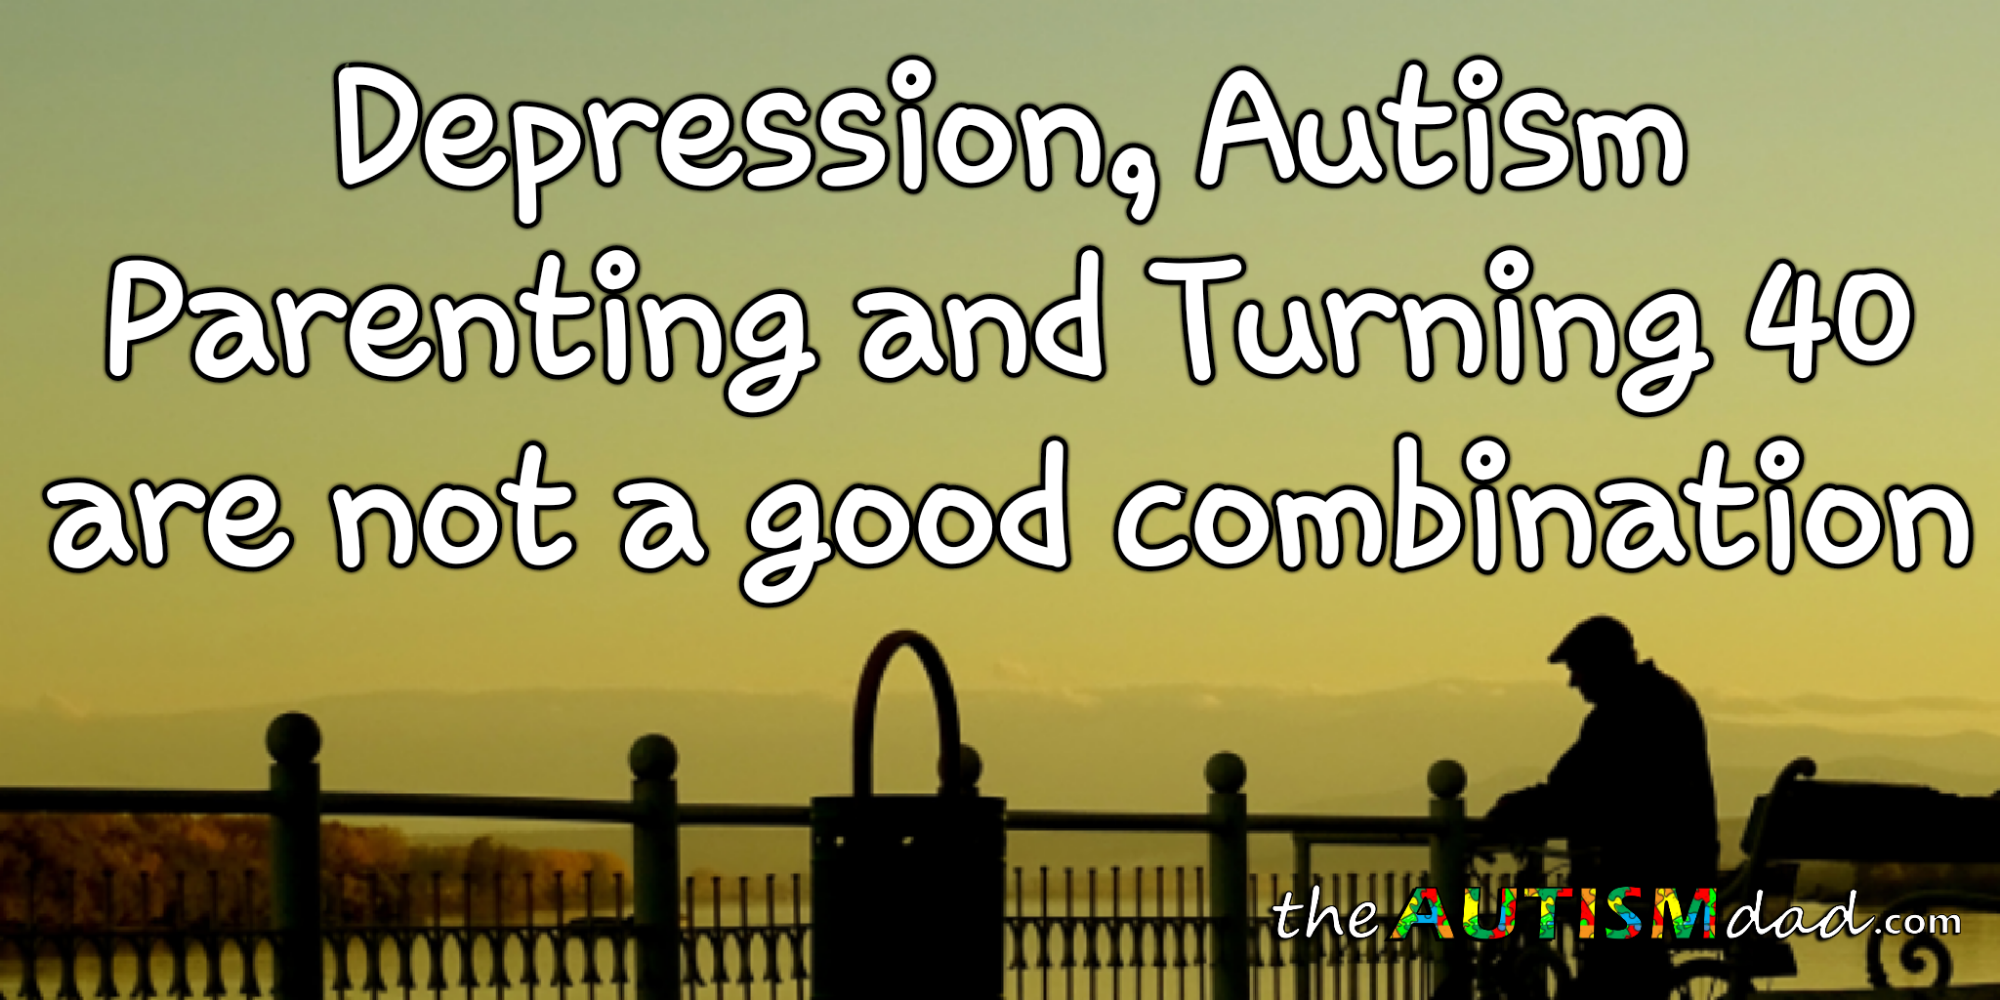 #Depression, #Autism Parenting and Turning 40 are not a good combination